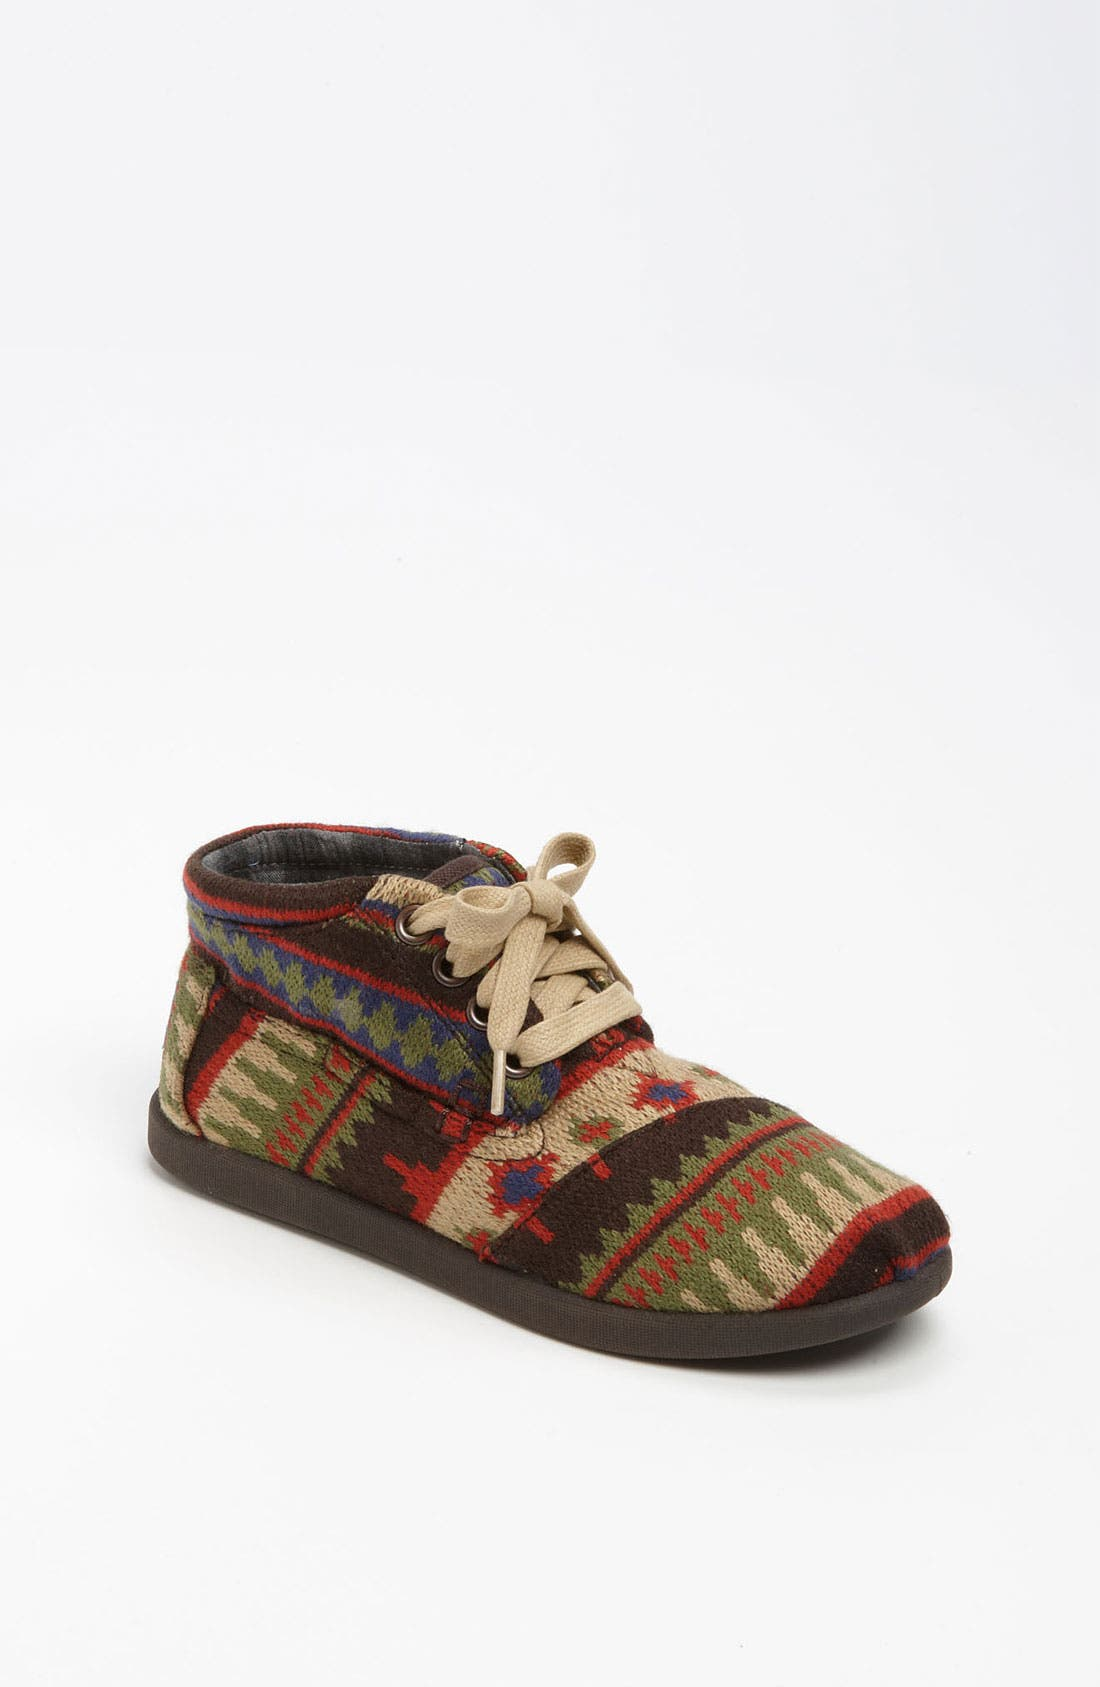 Main Image - TOMS 'Botas Youth - Kilim' Boot (Toddler, Little Kid & Big Kid)